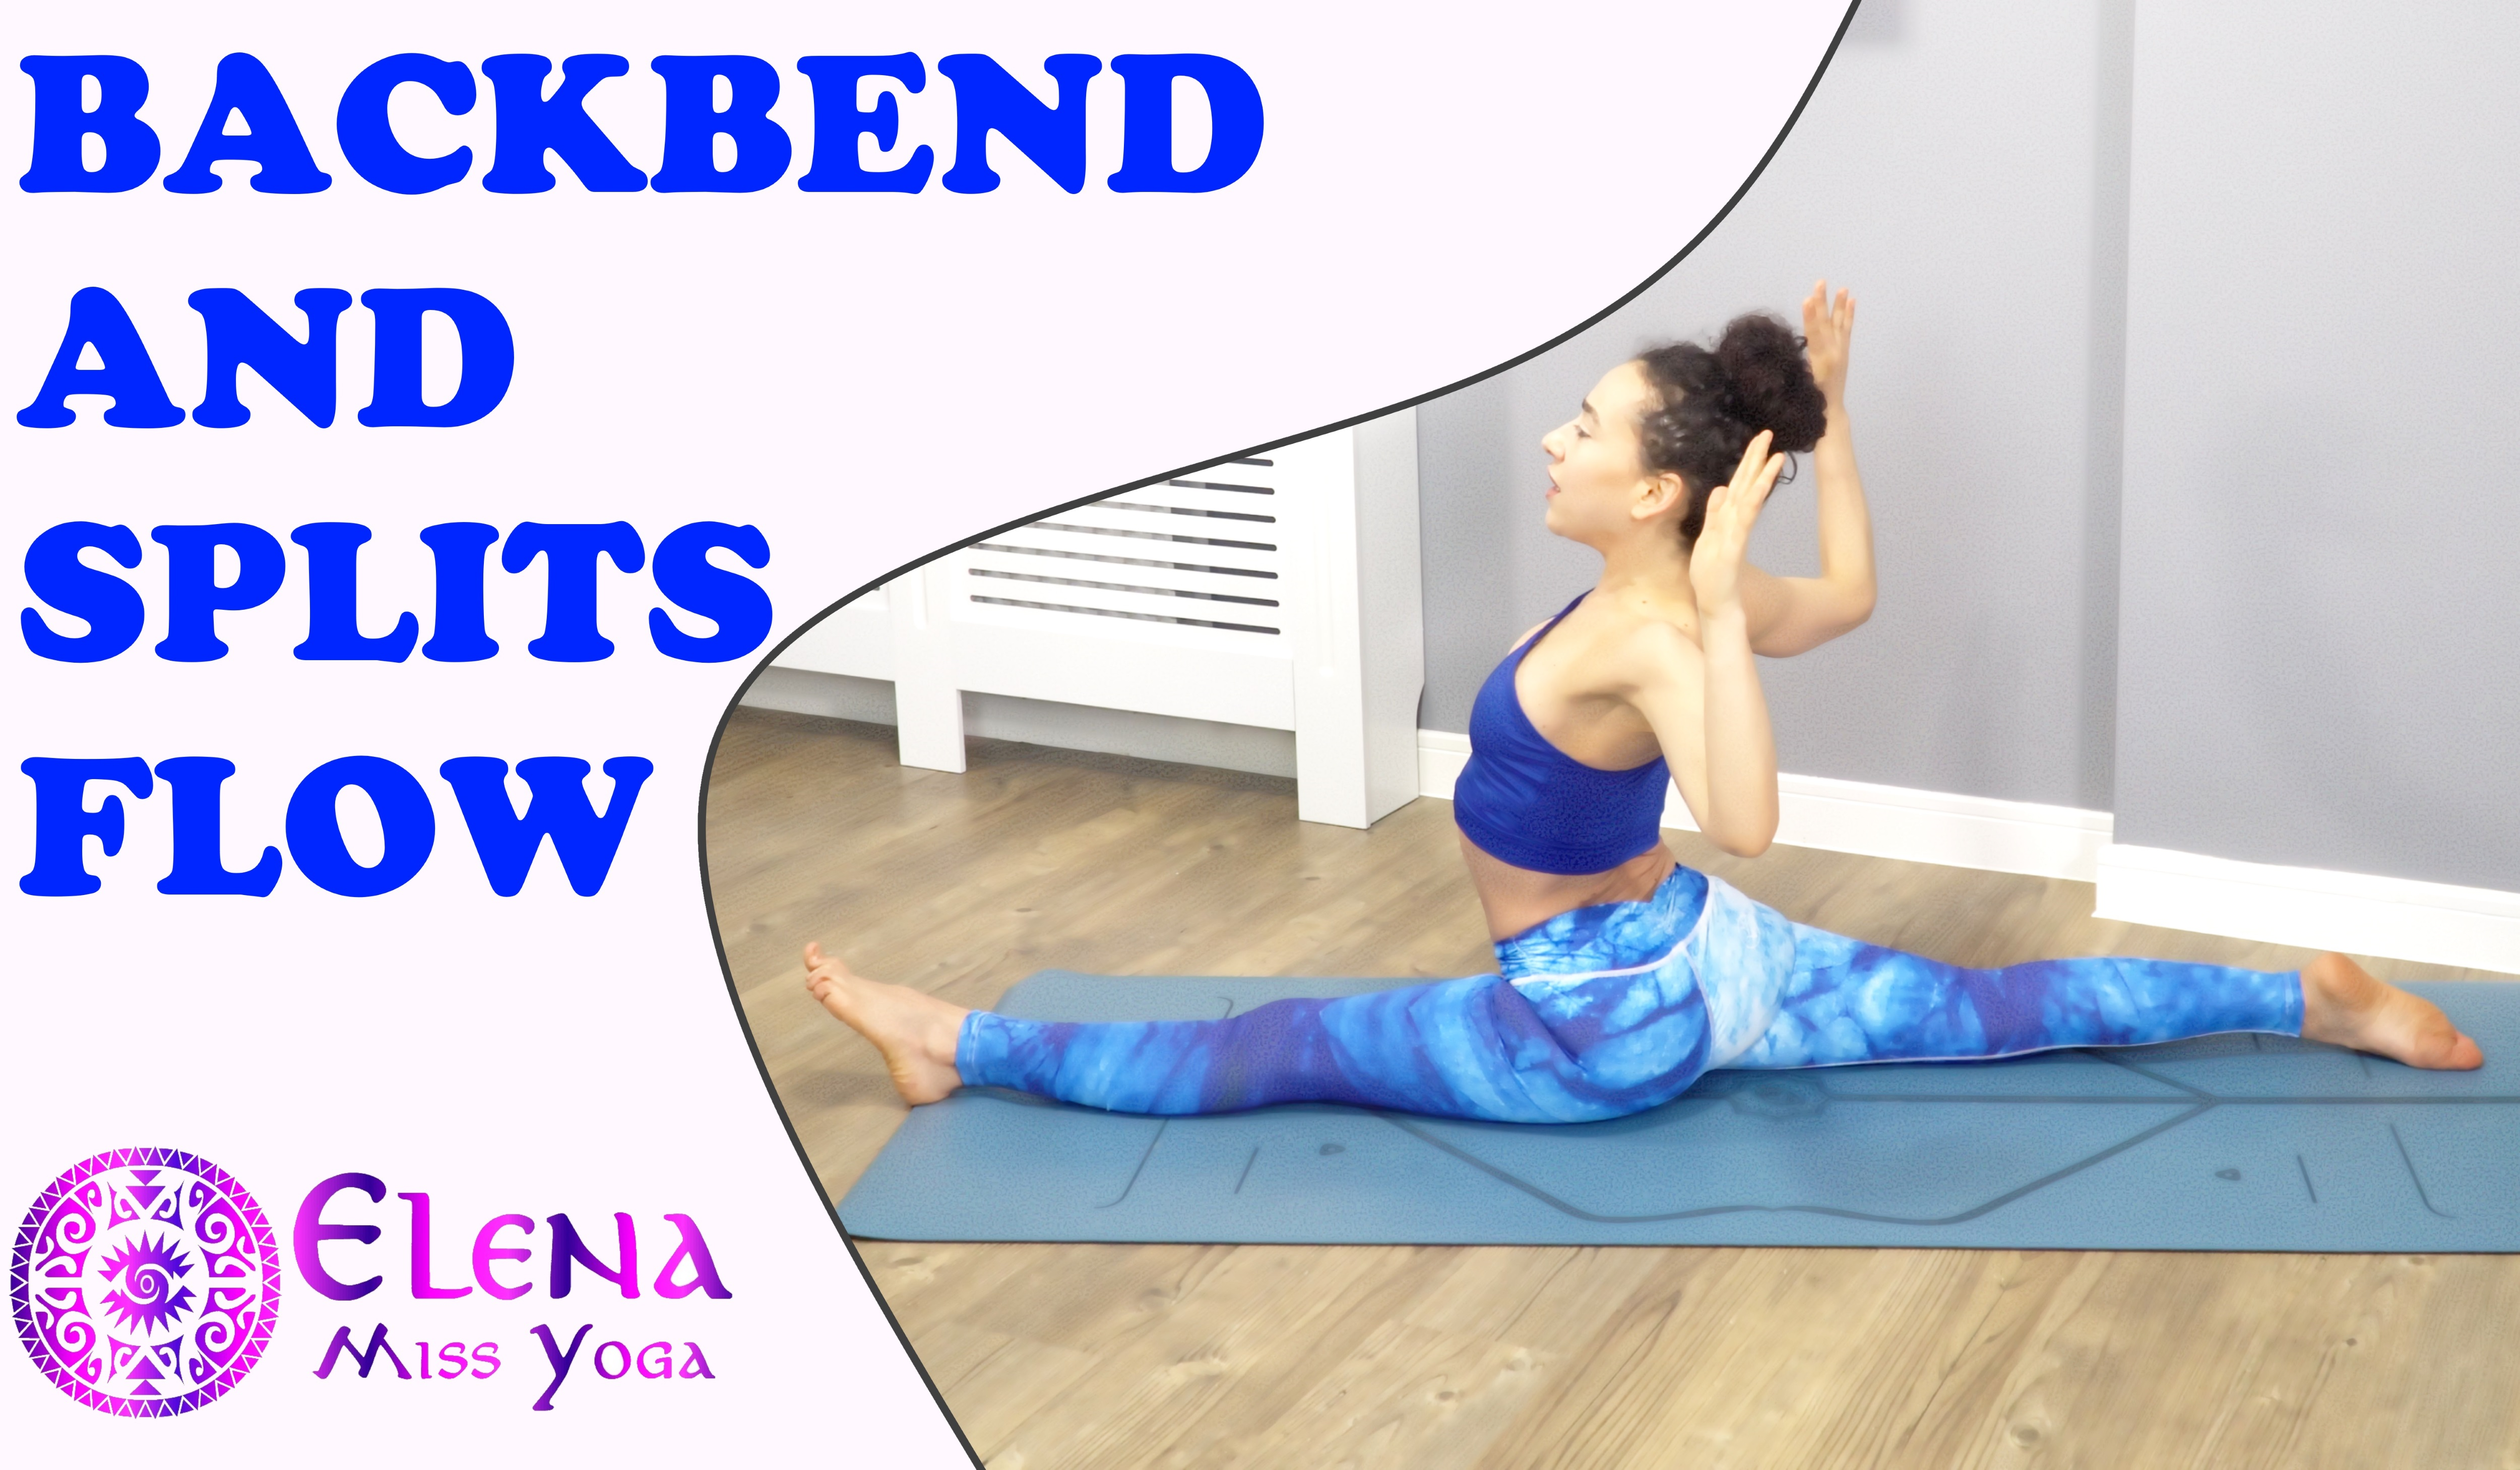 HANUMANASANA - SPLITS AND BACKBEND YOGA FLOW